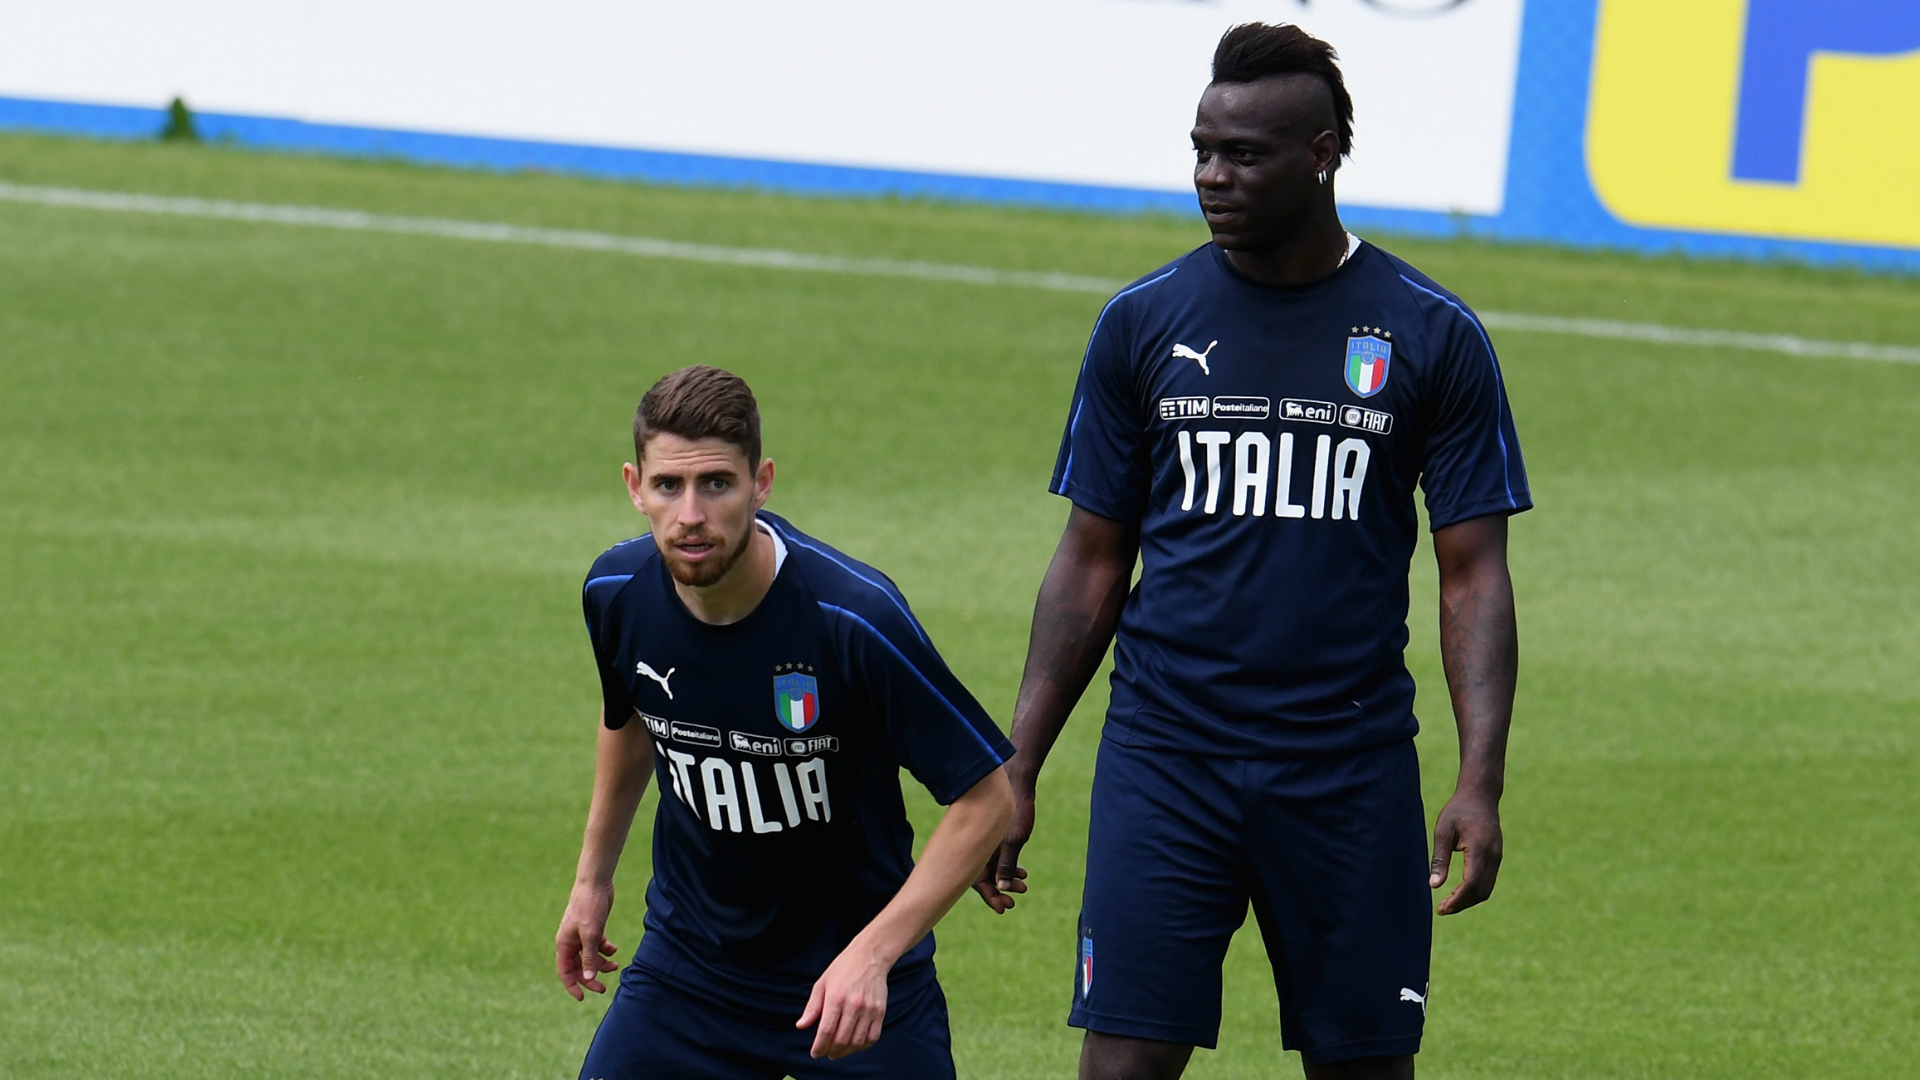 Balotelli takes aim at offensive banner displayed in Italy friendly